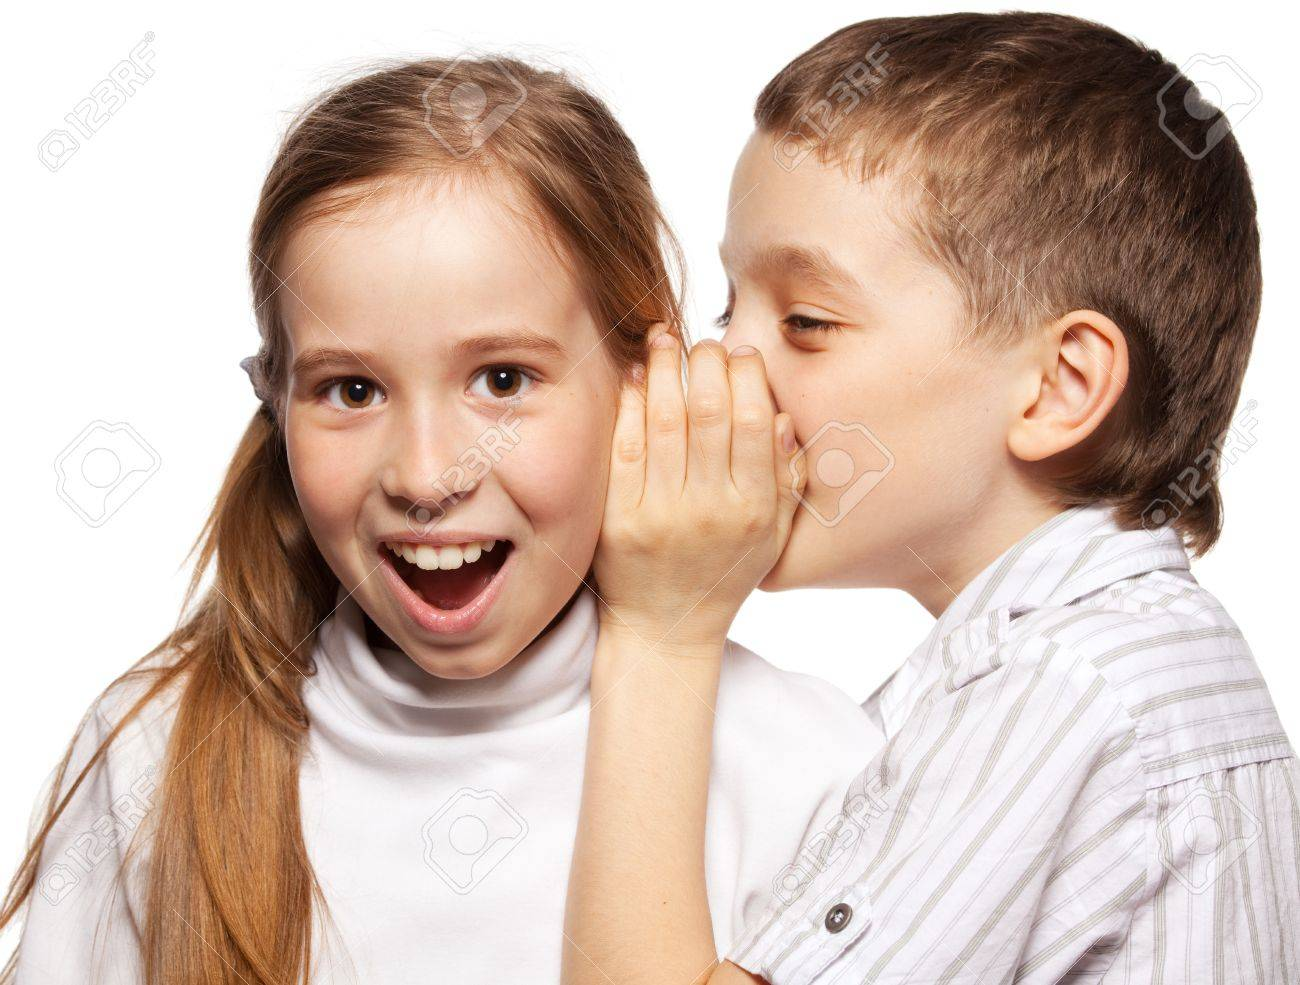 How to Whisper in a Girls Ear How to Whisper in a Girls Ear new pics